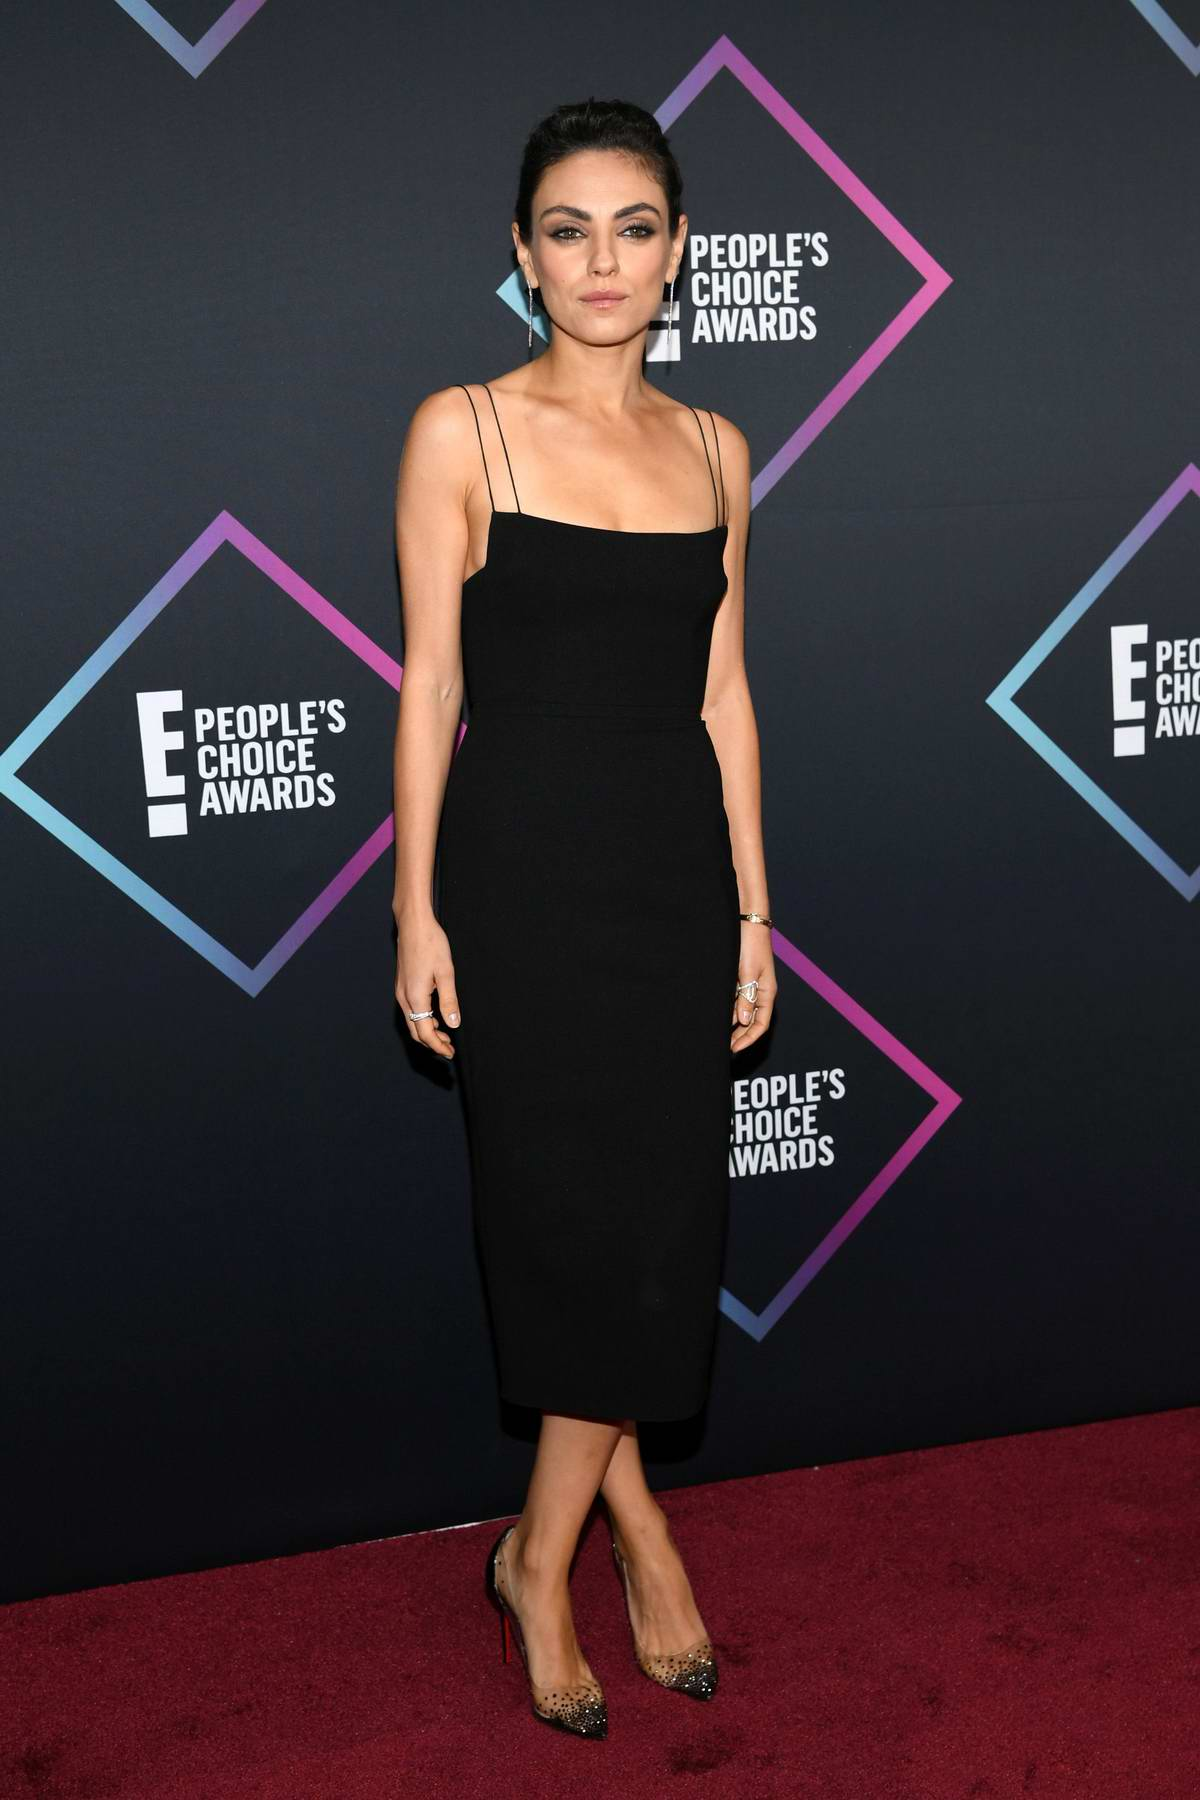 Mila Kunis attends People's Choice Awards 2018 at Barker Hangar in Santa Monica, California